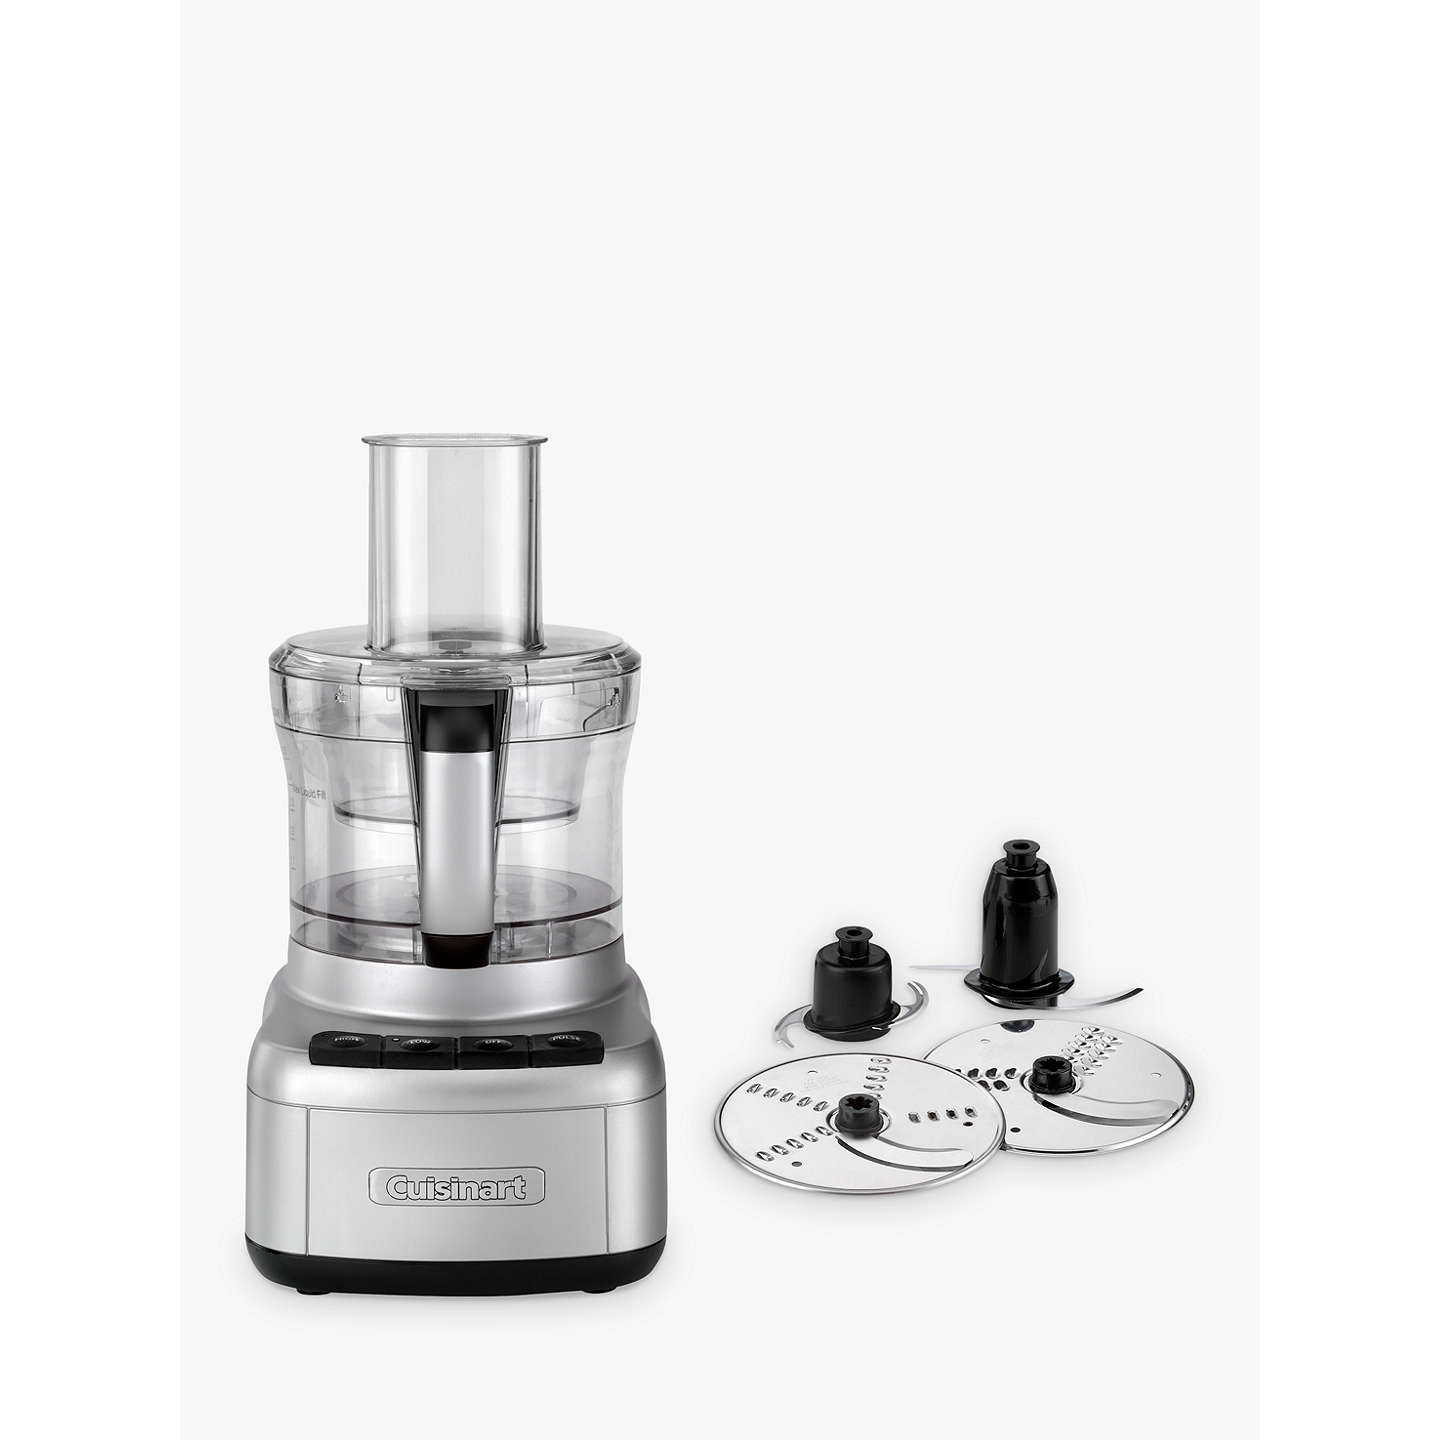 BuyCuisinart Easy Prep Pro Food Processor Online at johnlewis.com